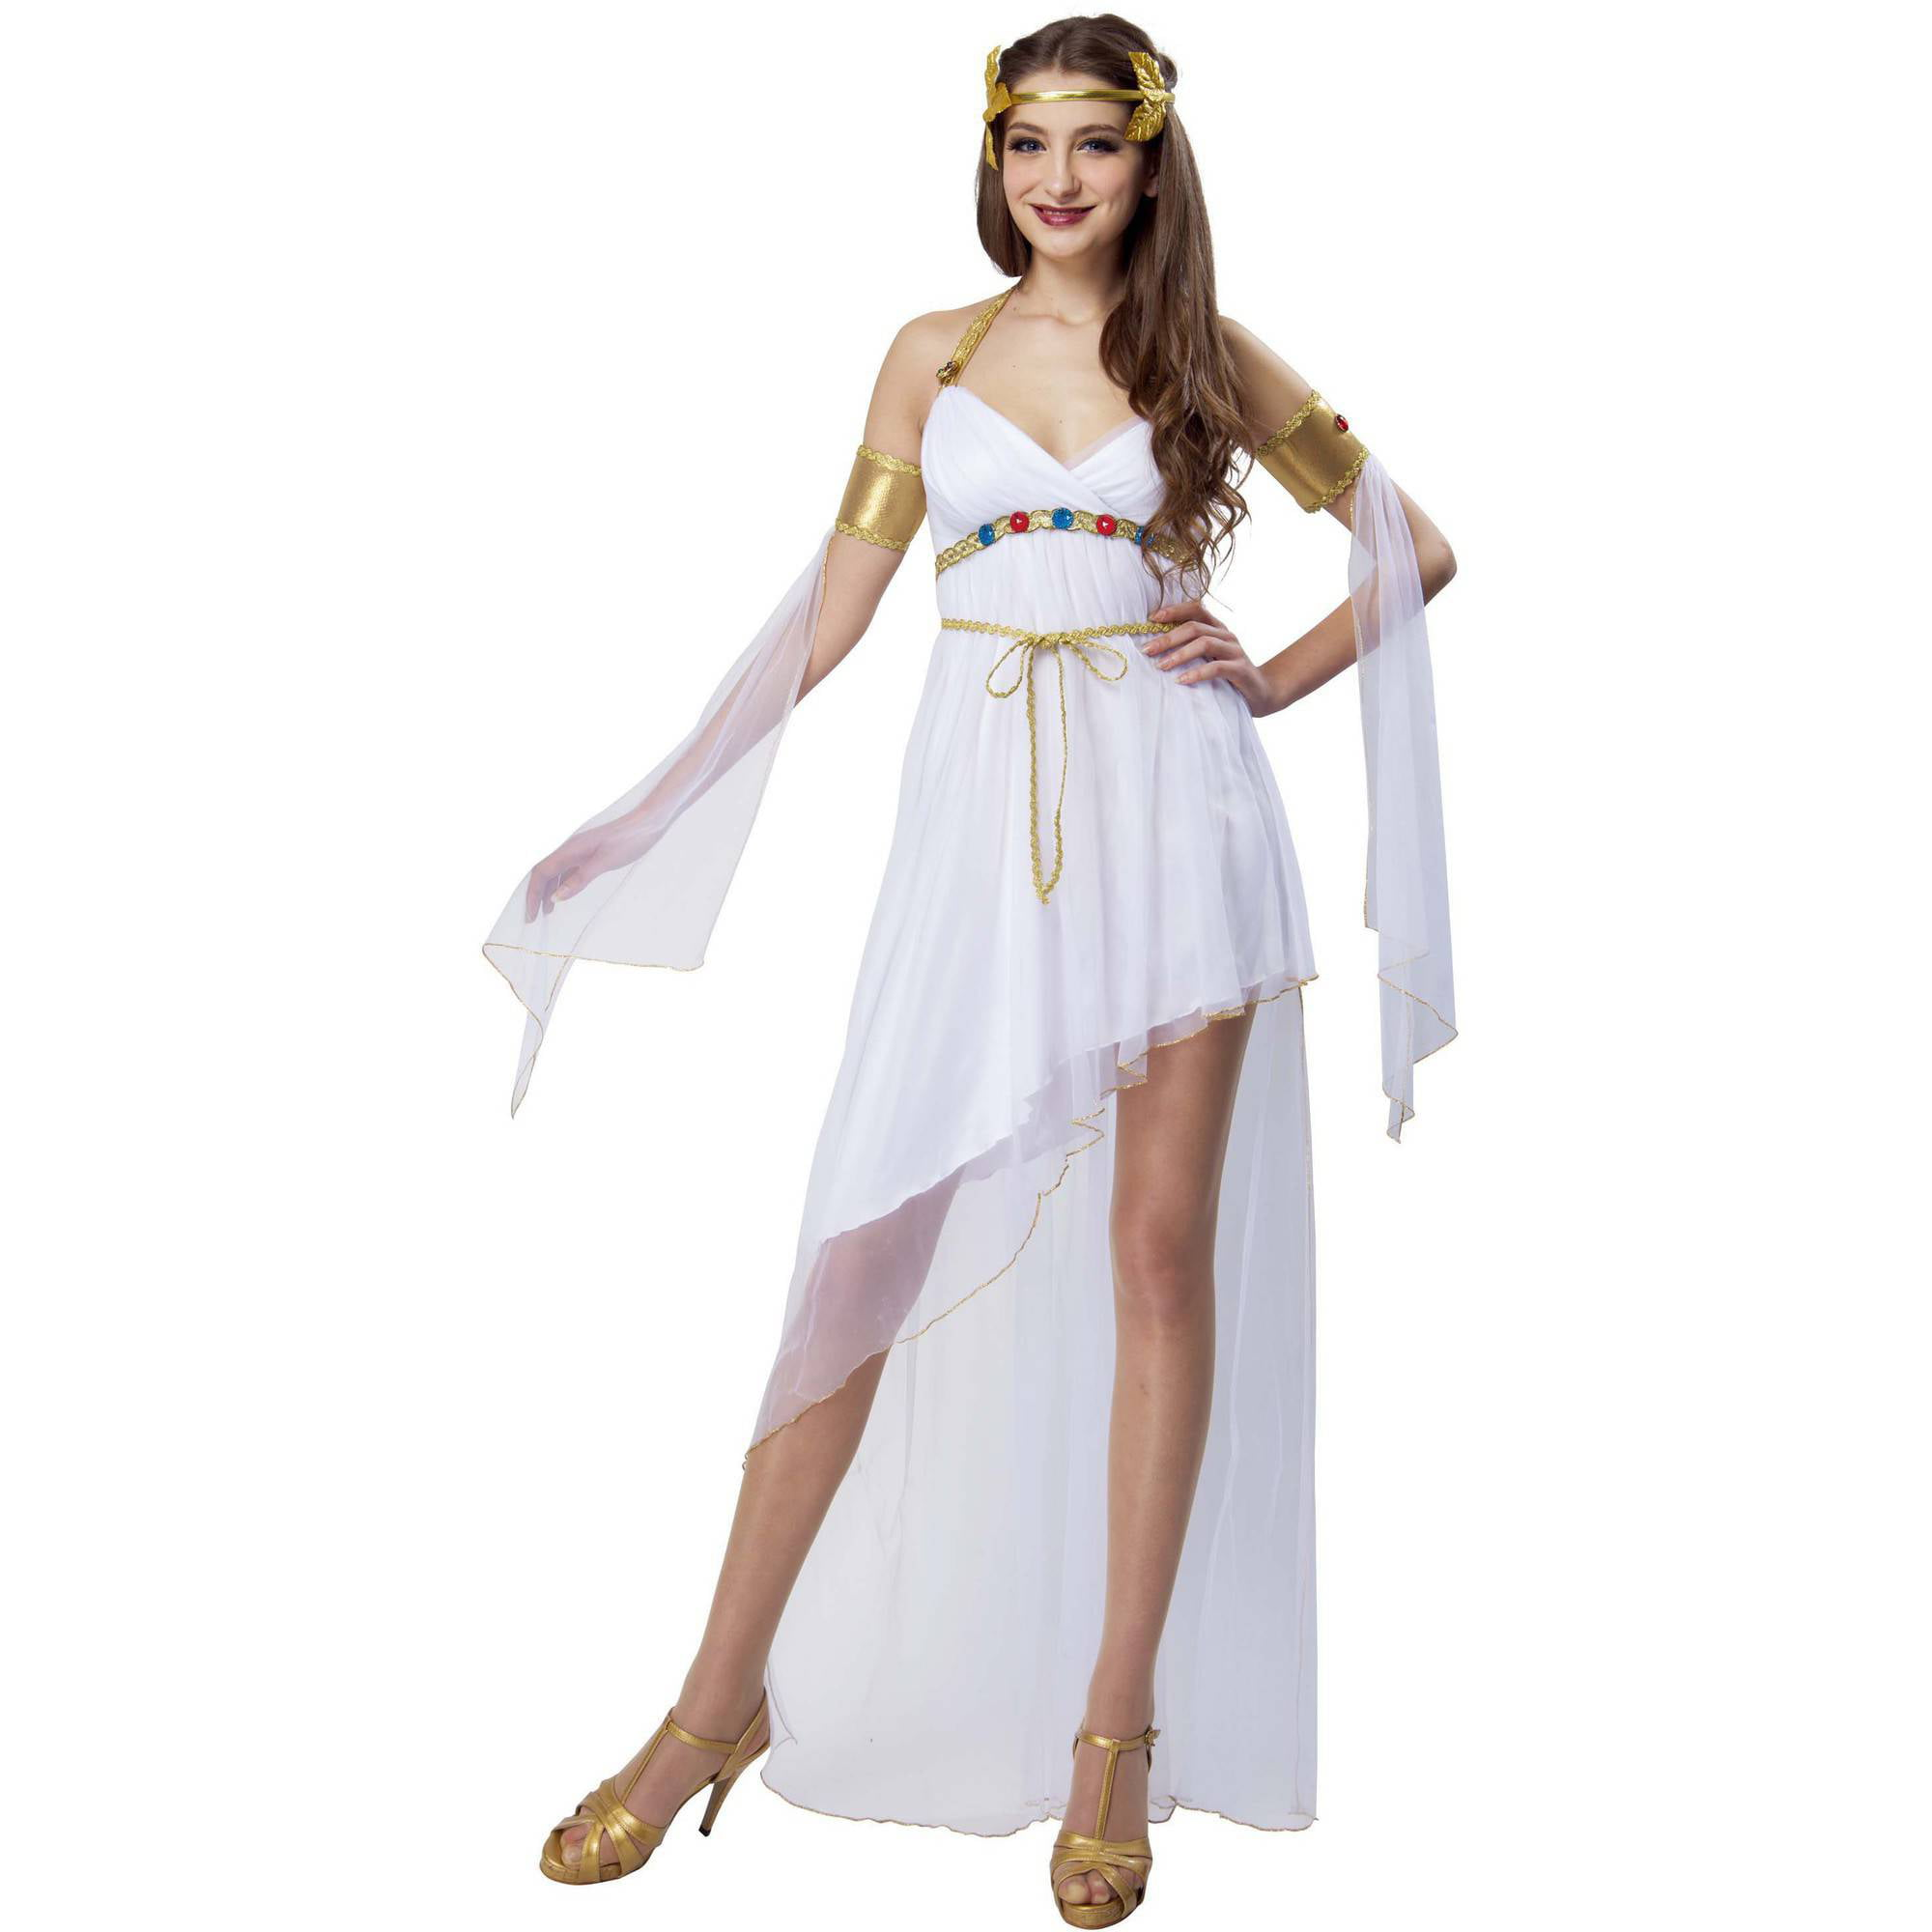 Greek Goddess Adult Halloween Dress Up  Role Play Costume -6102